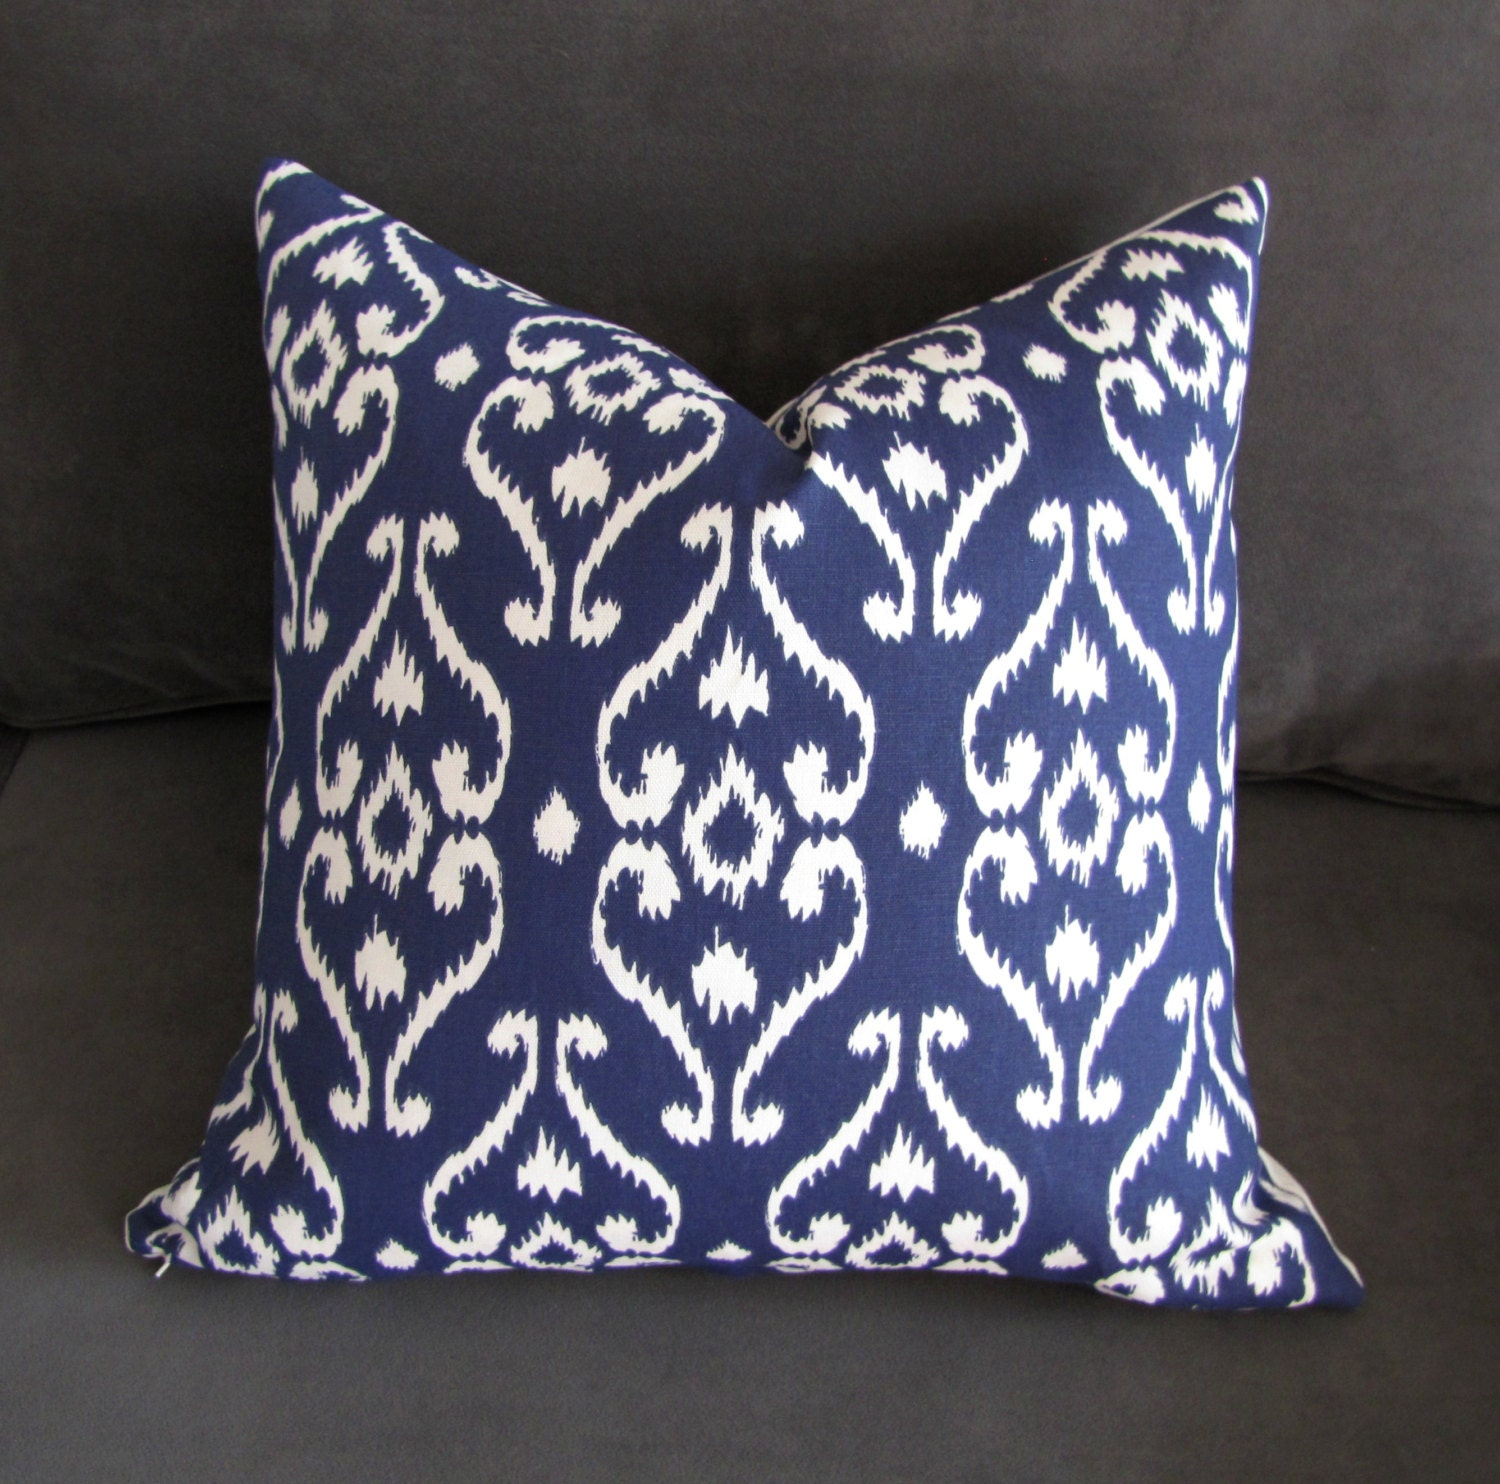 Throw Pillows For Navy Blue Couch : Navy blue throw pillow Ikat sofa pillow damask print couch